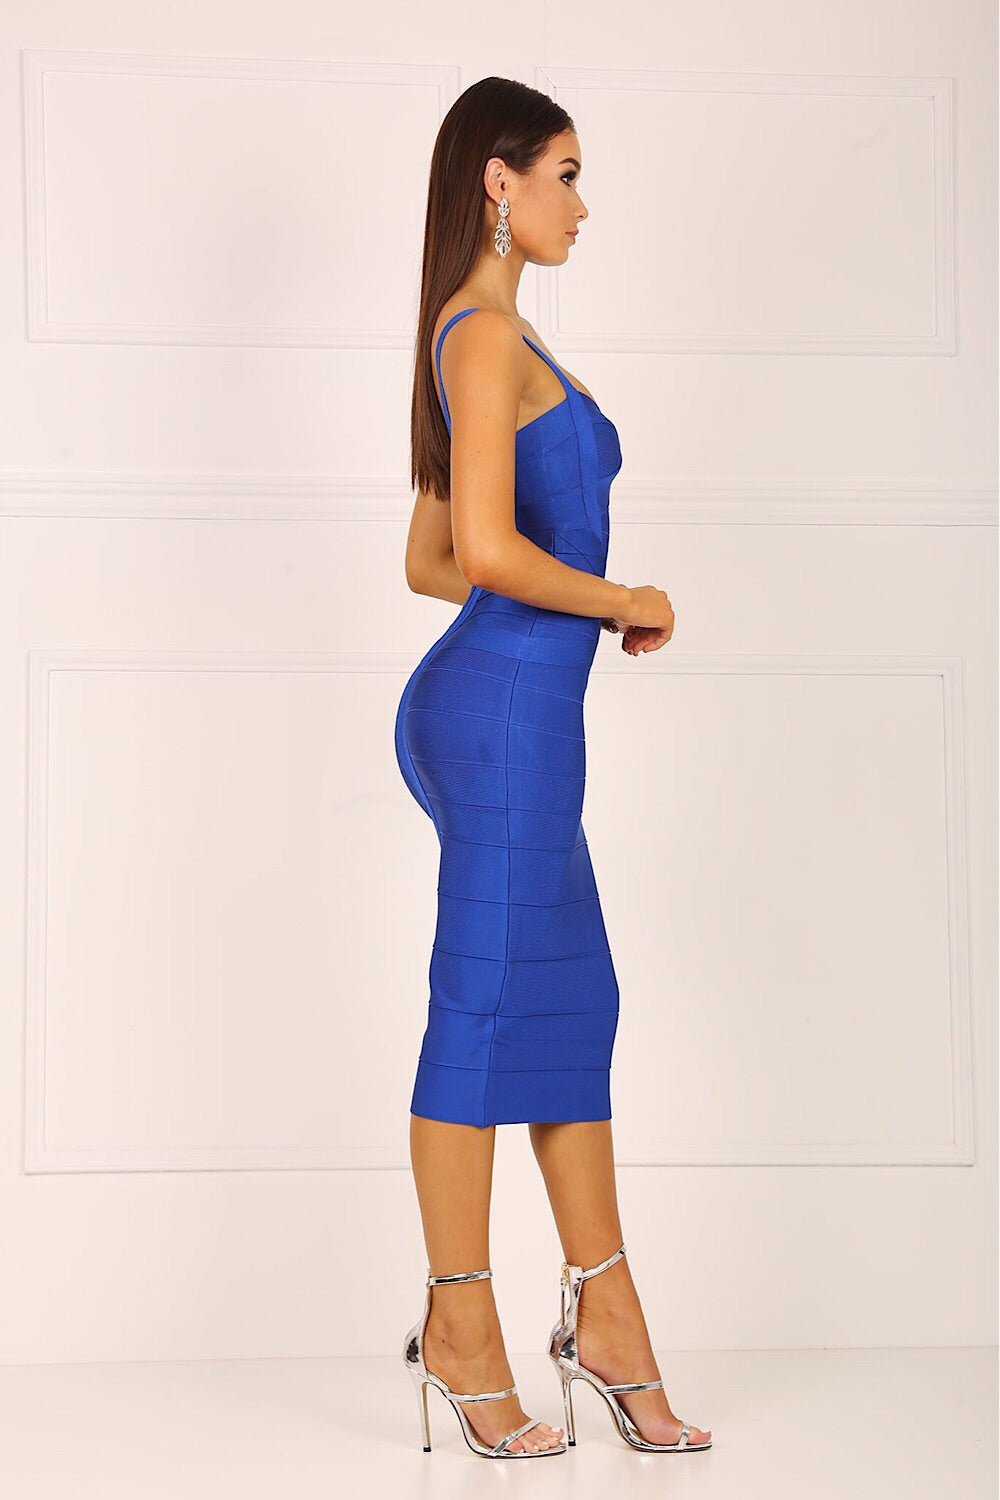 Vogue Royal Blue Bandage Dress